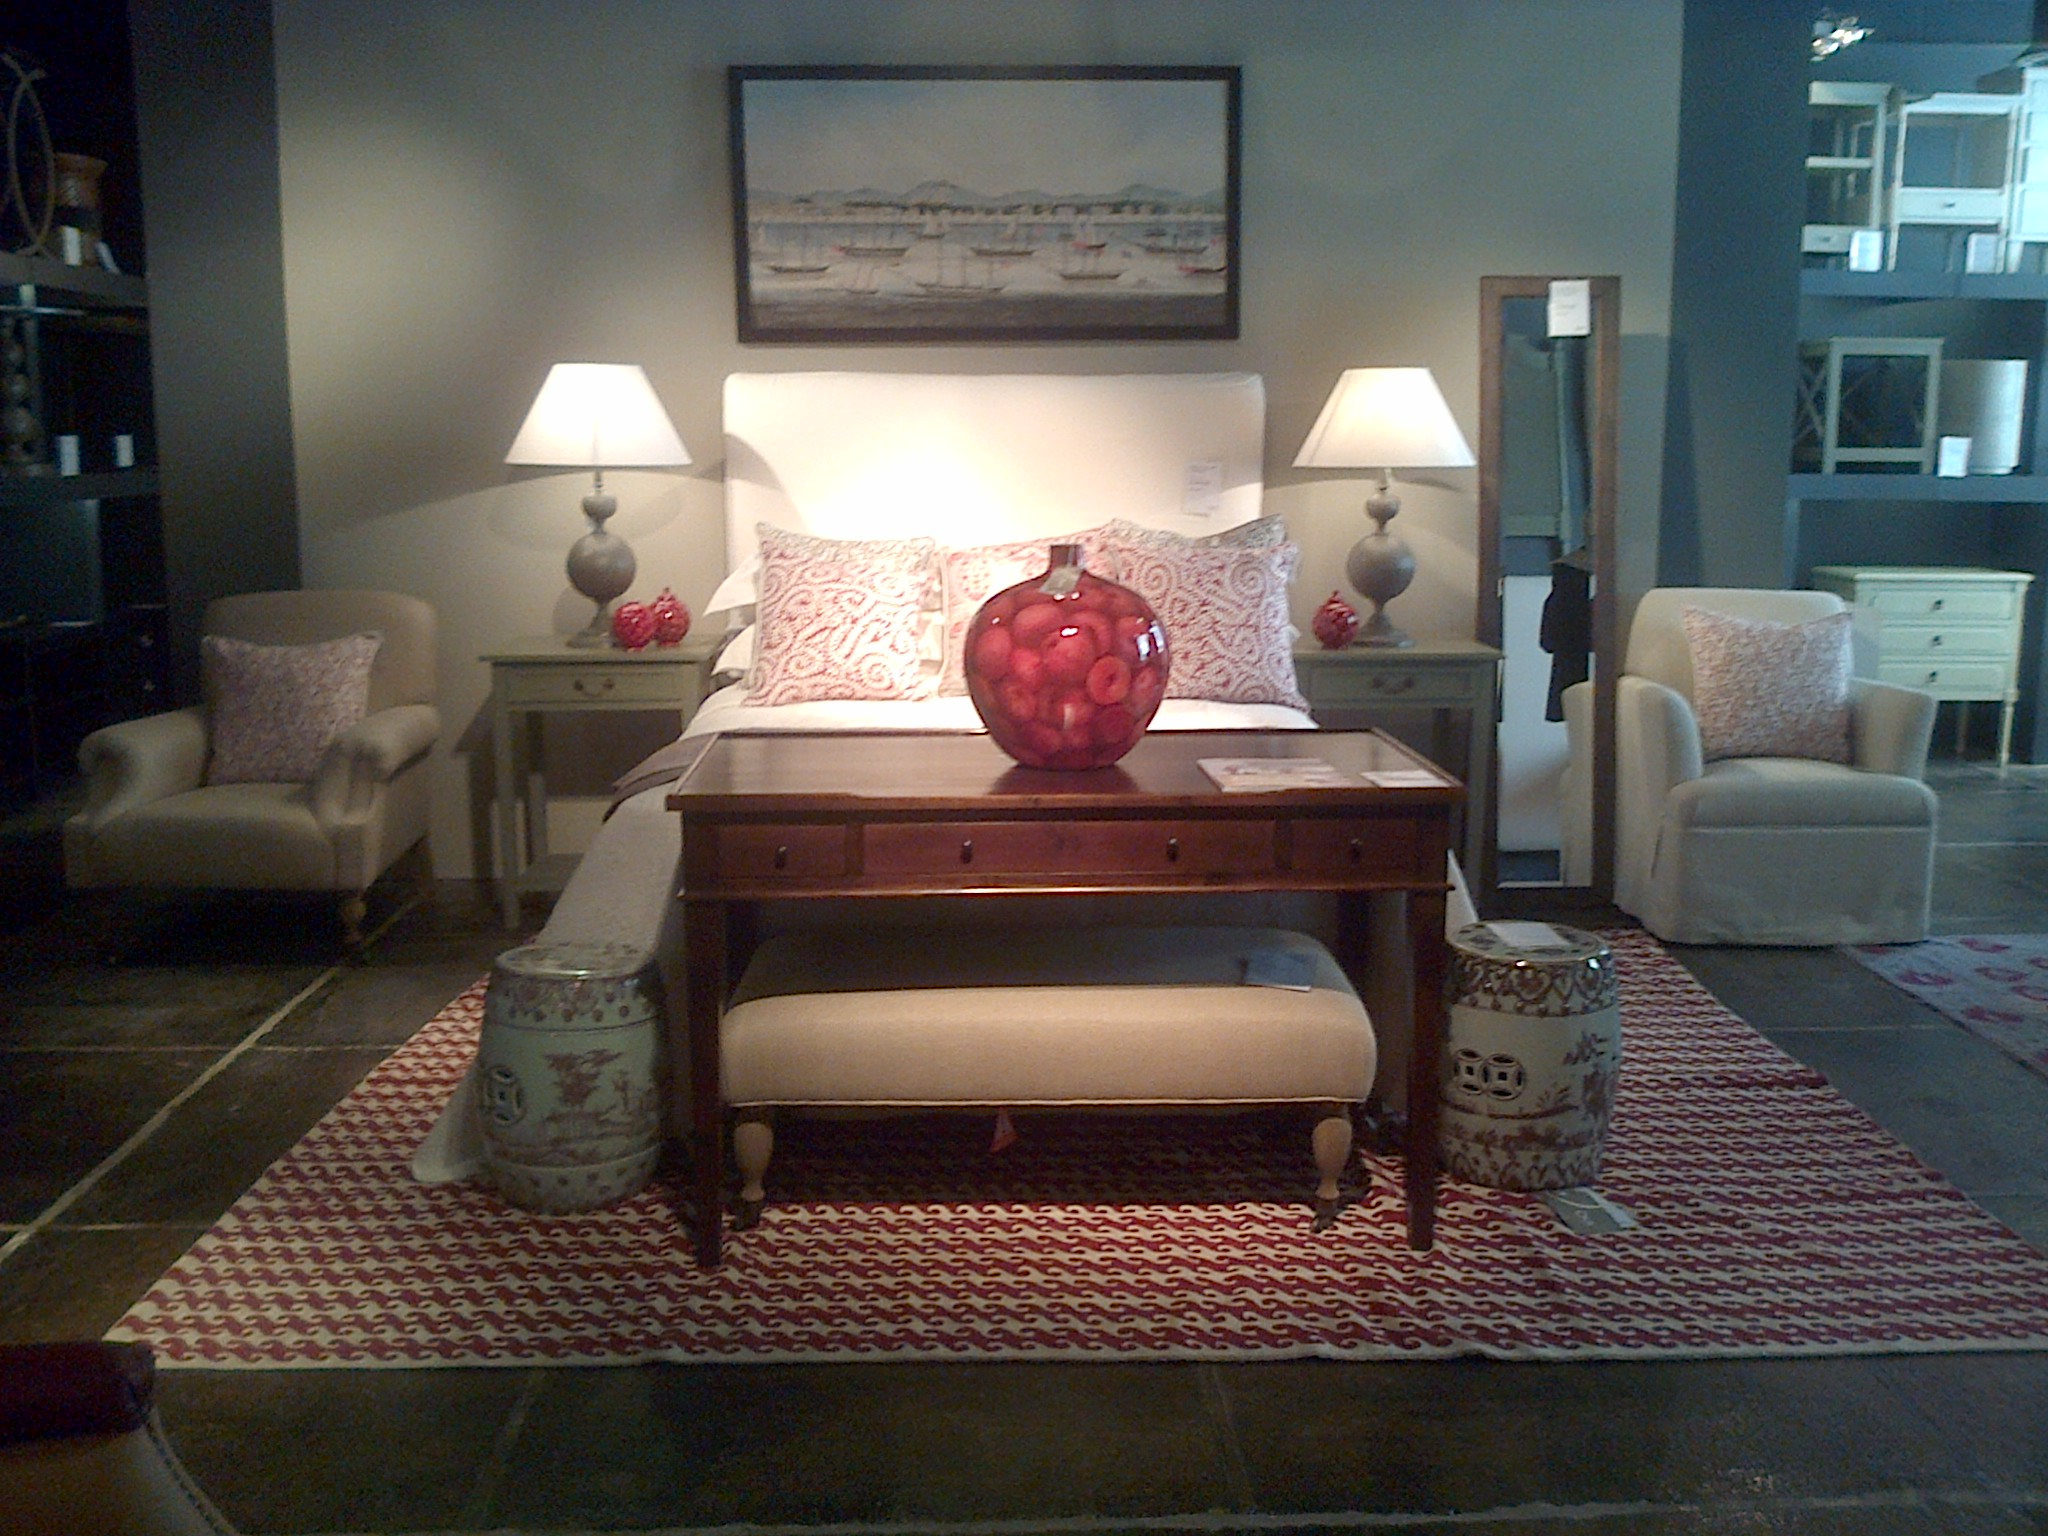 The painting, the bed, the vase, lamps= nice